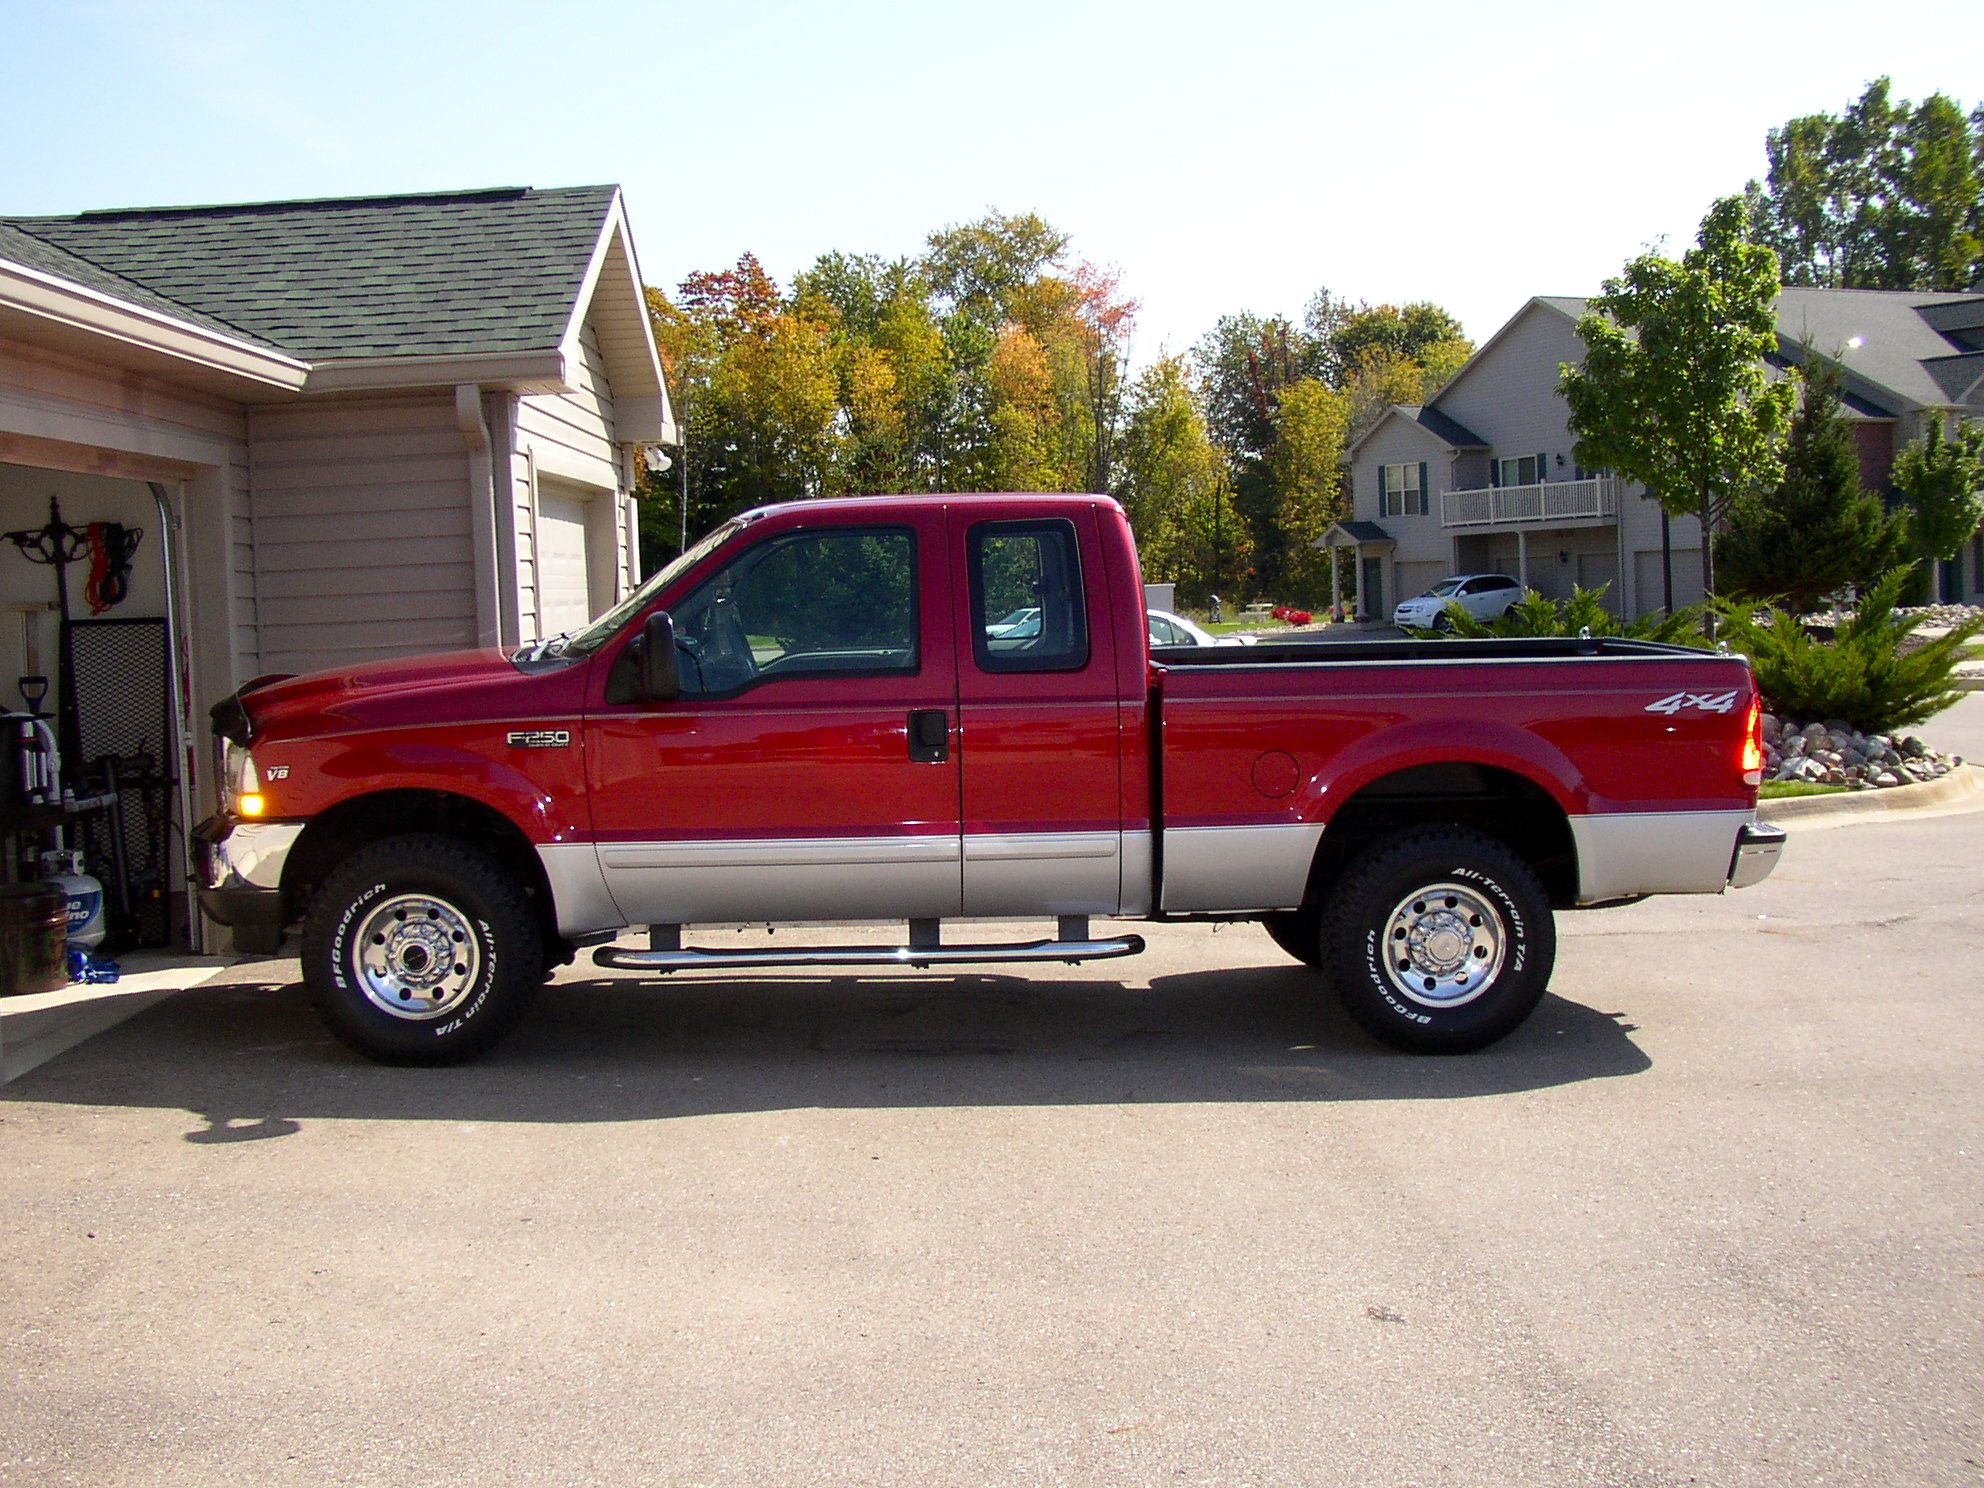 9 2002 F250 Super Duty 4x4 4 Door Crew Deep Red Wine Not Two Toned V 10 Solid Bought New At Ford Dealership On Mercu F250 Super Duty F250 Ford F250